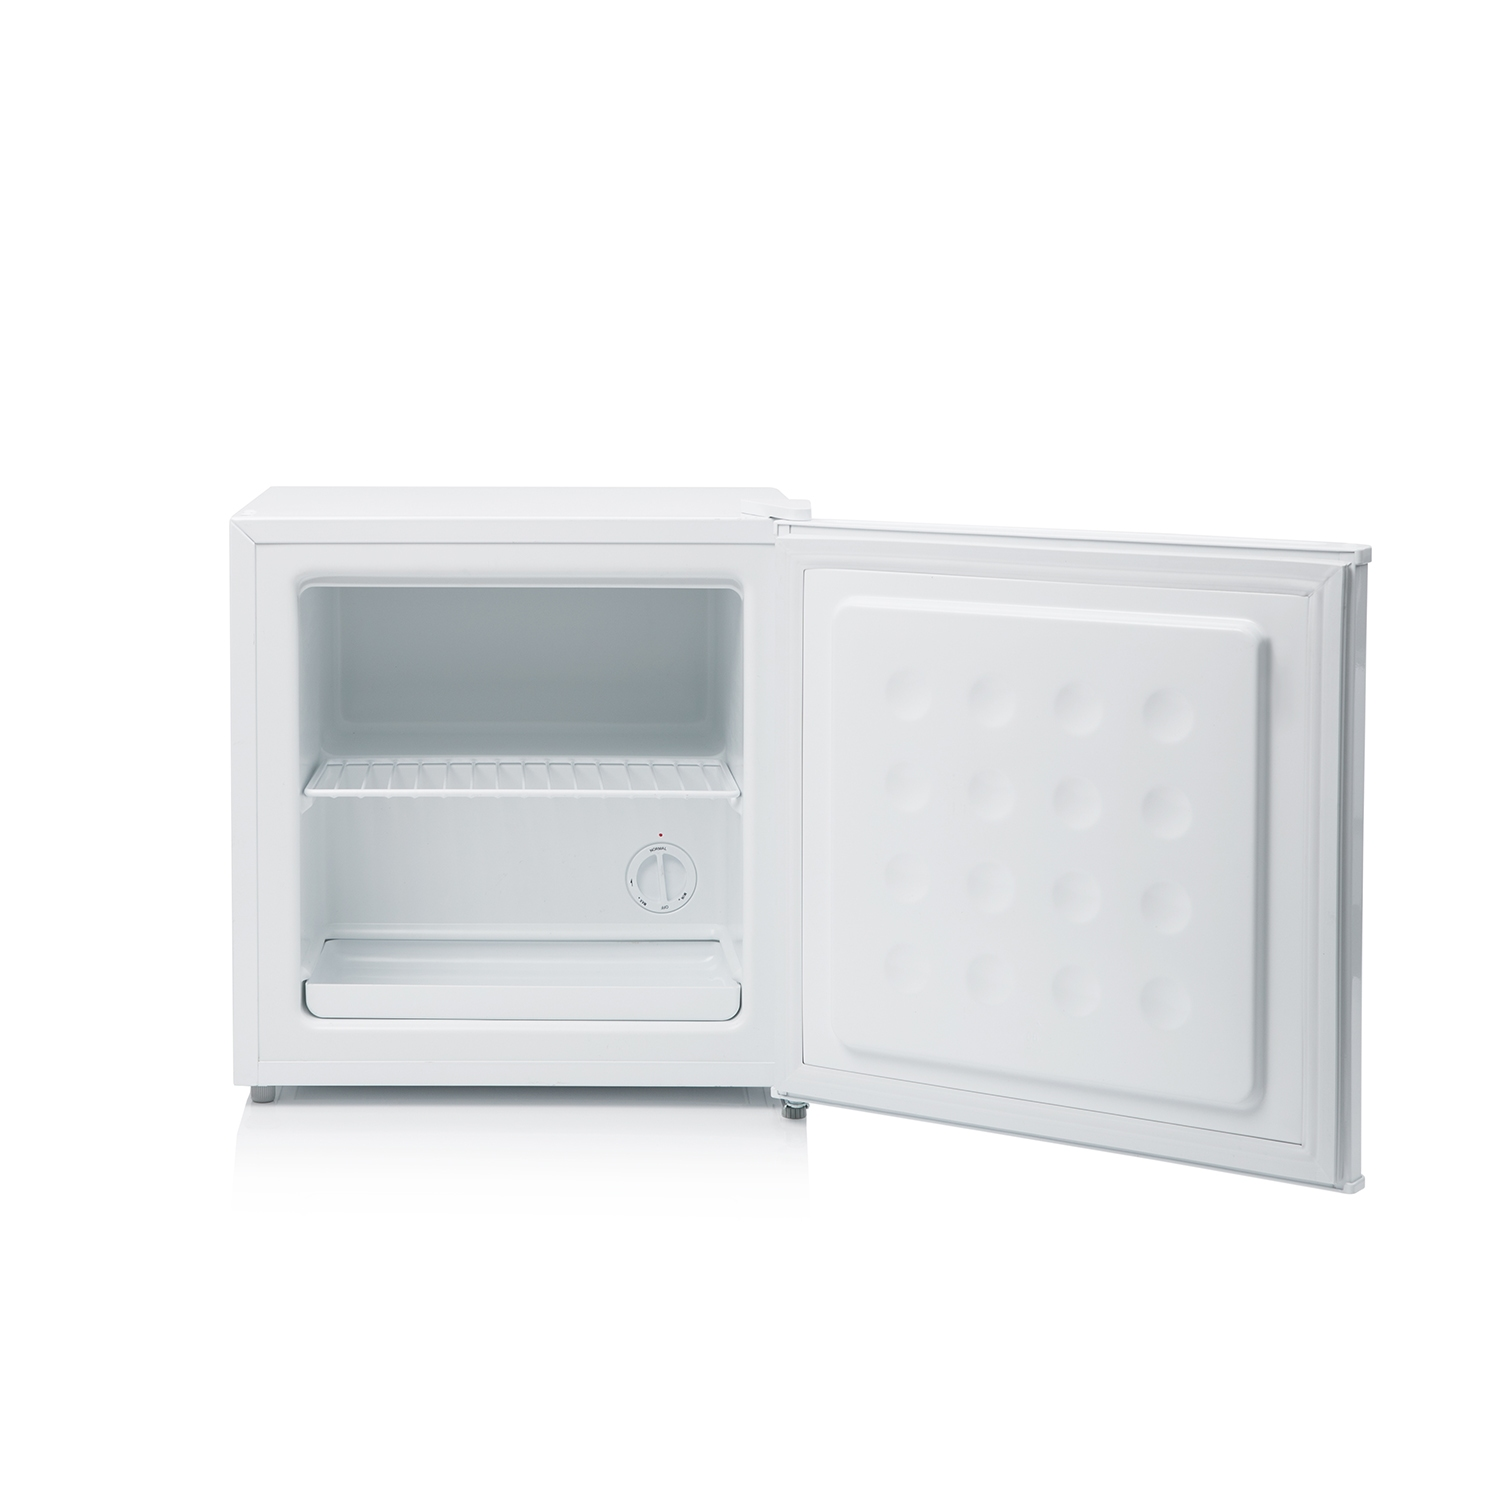 Haden 47cm Table Top Freezer - White - A+ Rated - 0